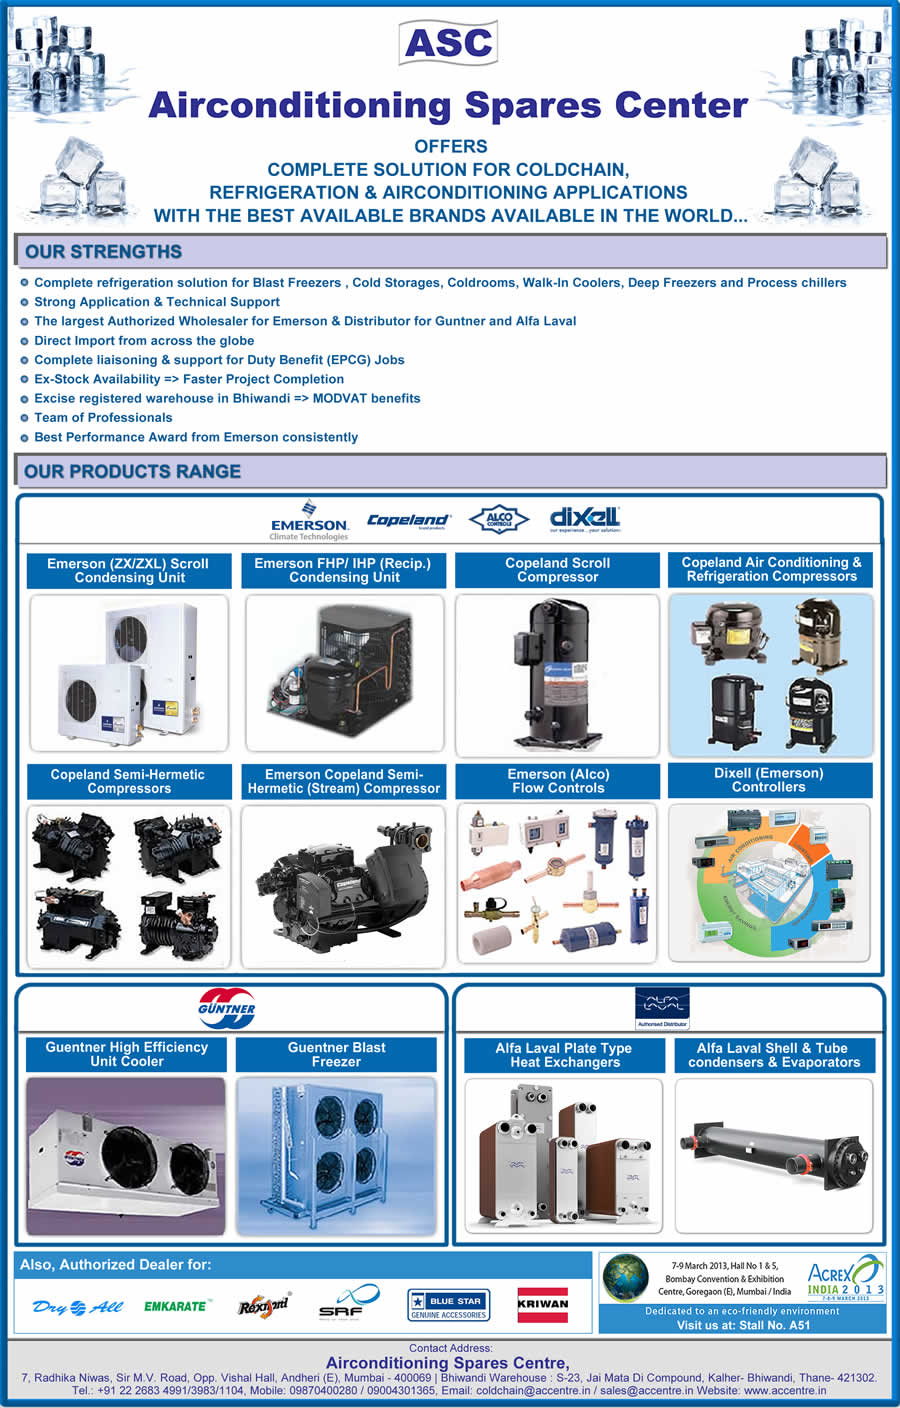 Airconditioning Spares Centre Emailer